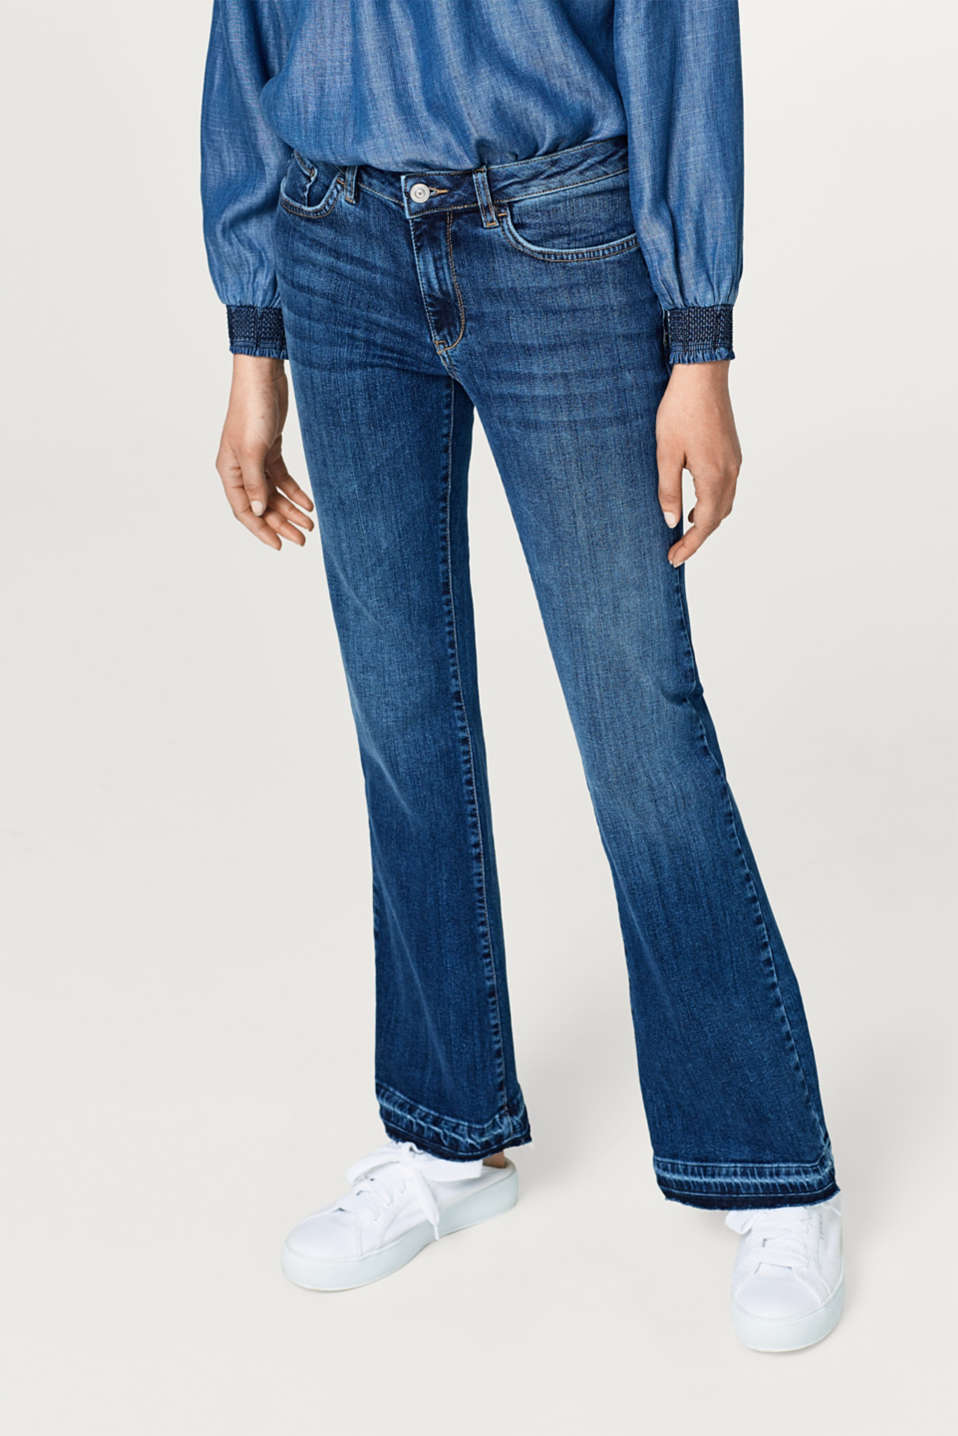 edc - Stretch jeans with frayed hems